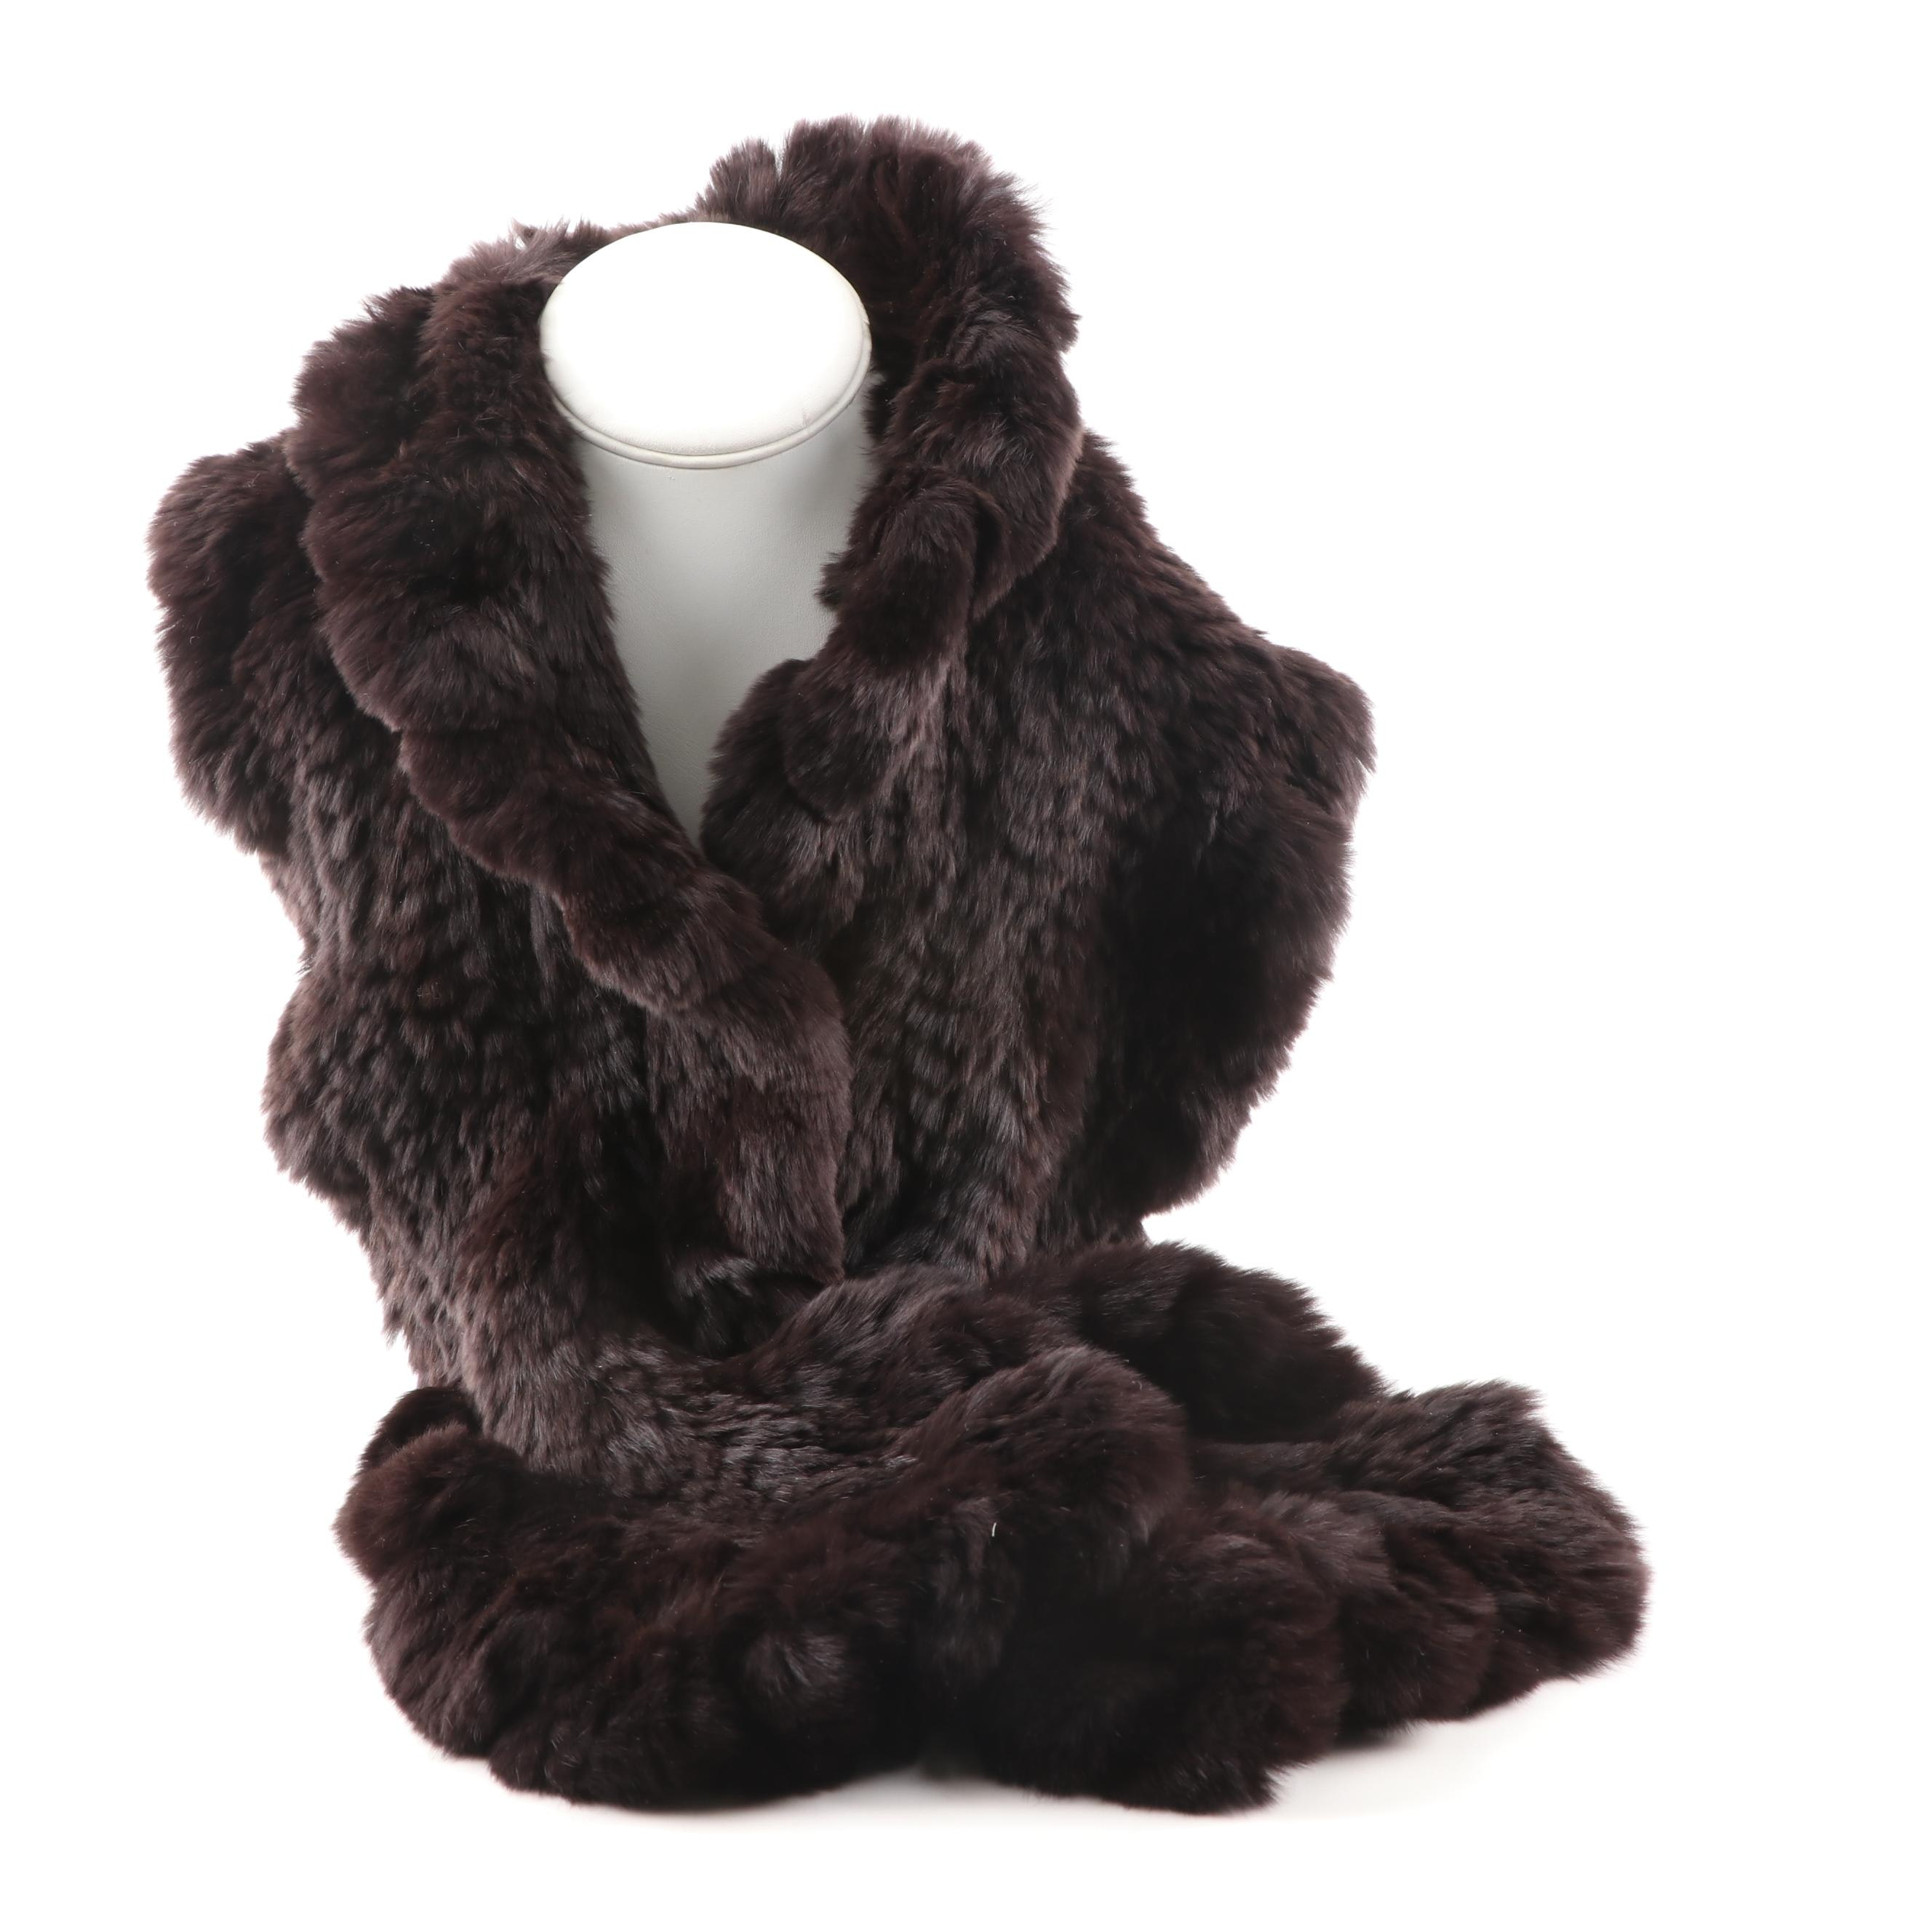 Women's Trilogy Collections Knitted Sheared Rabbit Scarf